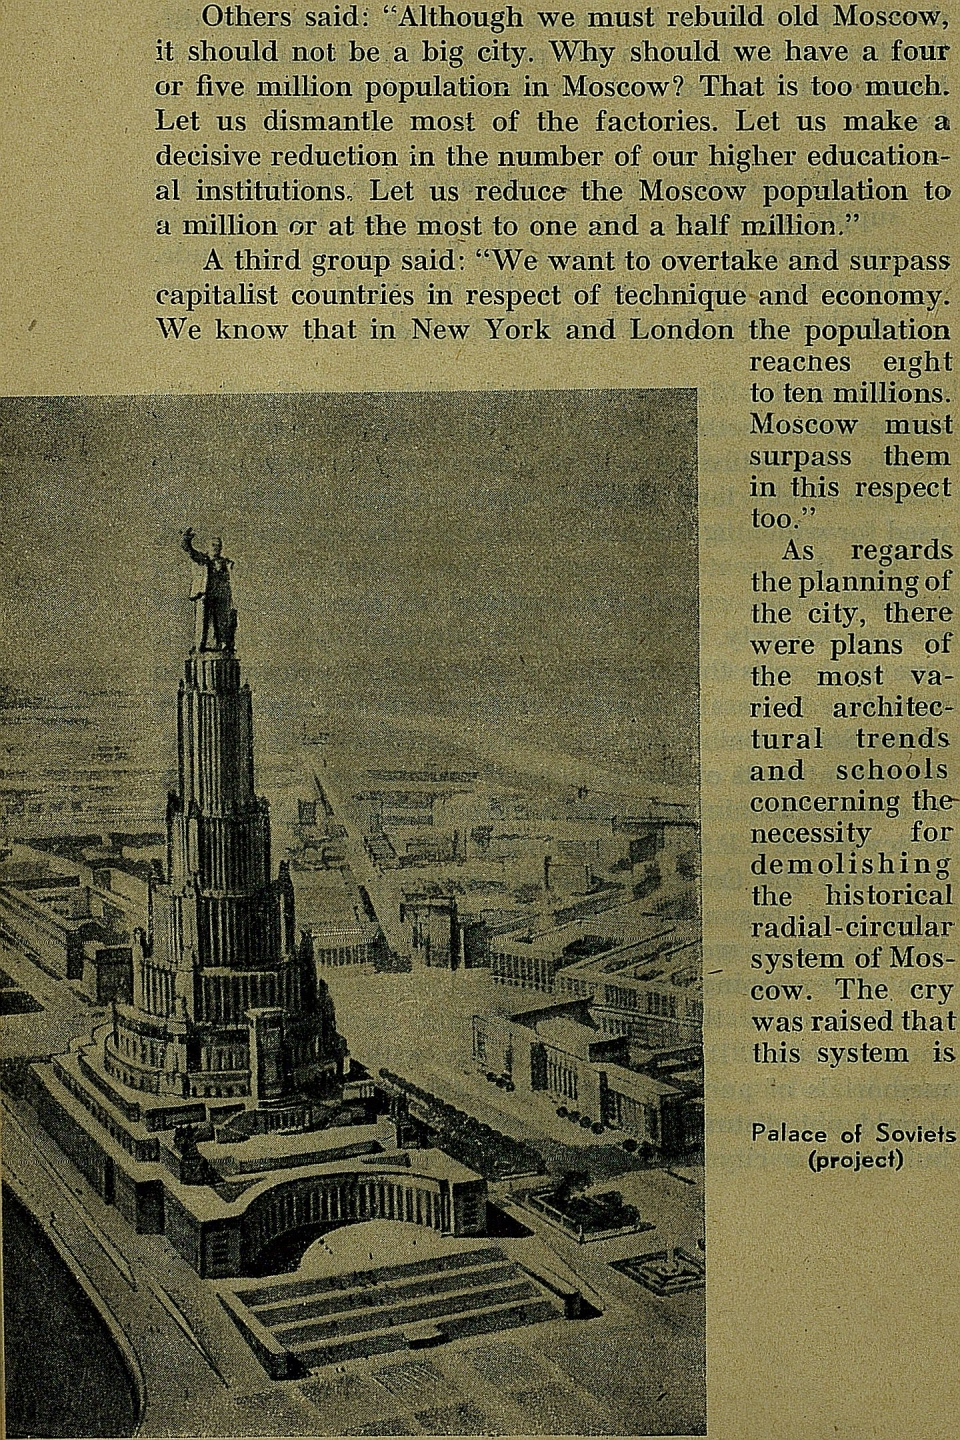 The Reconstruction of Moscow / by L. Perchik ; translated by J. Evans. — Moscow : Co-operative publishing society of foreign workers in the U.S.S.R., 1936